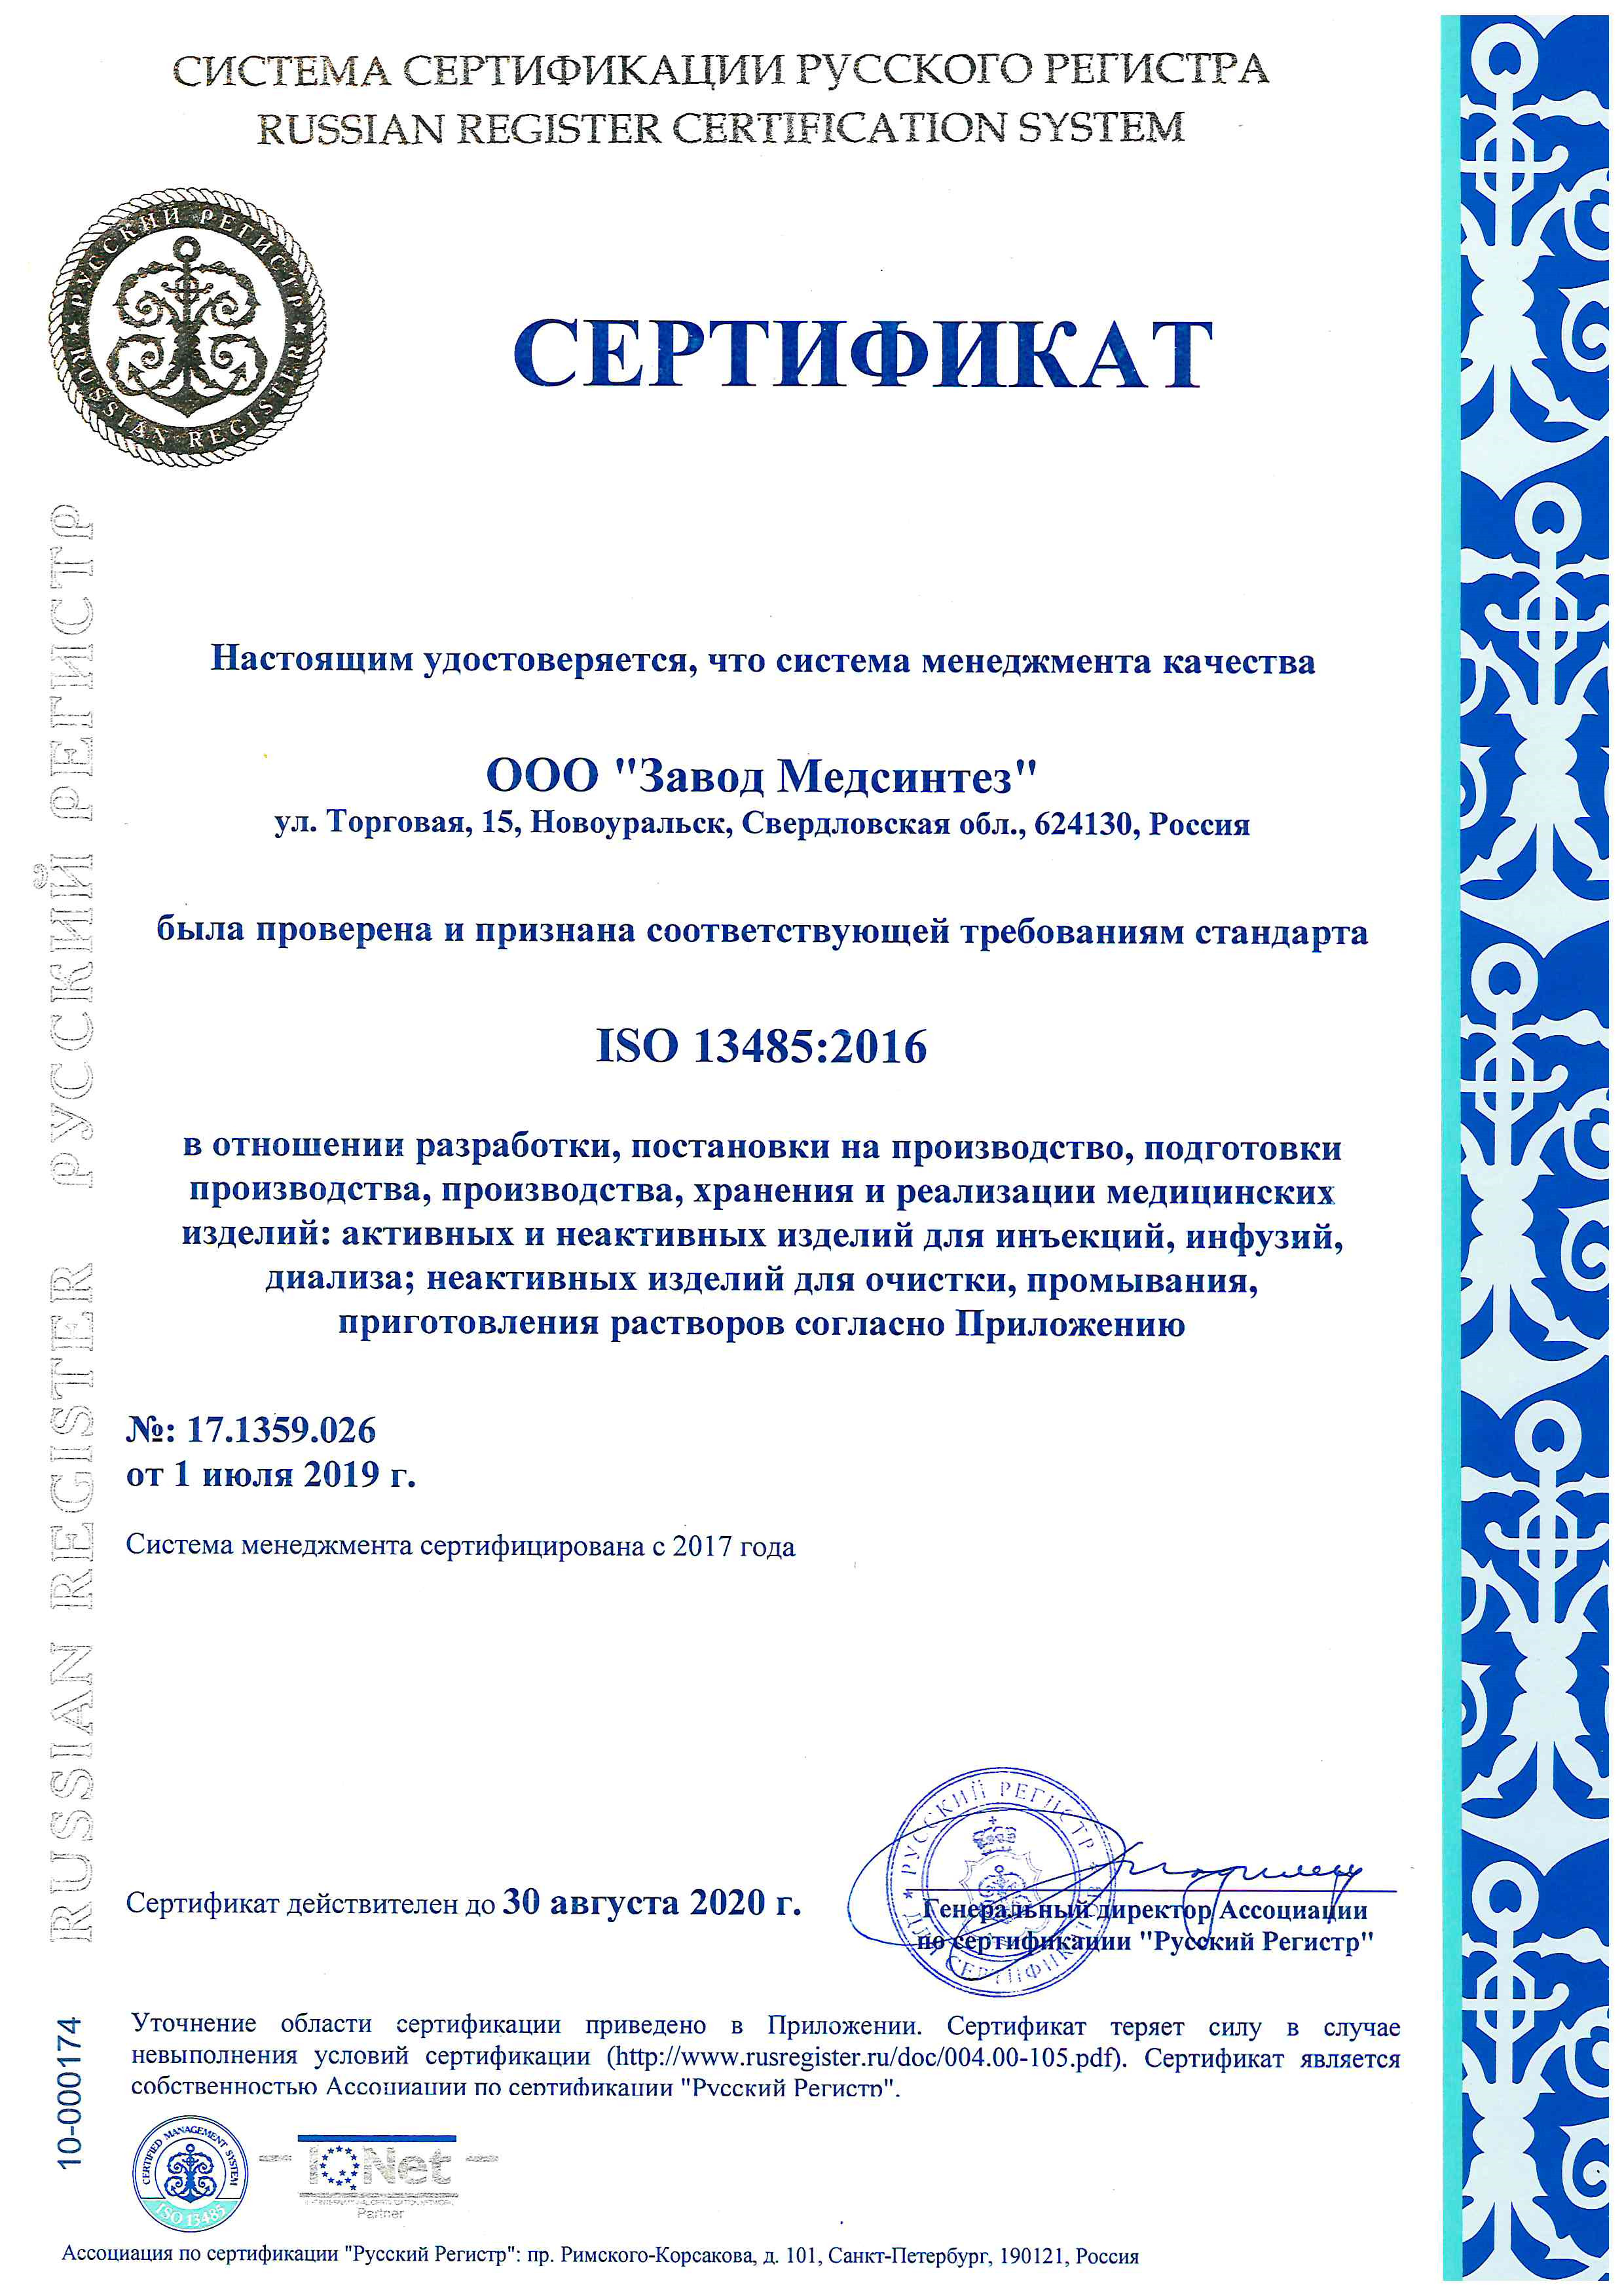 Certificate of compliance with the requirements of GOST ISO 13485:2017 standard issued by Russian Register Certification Association